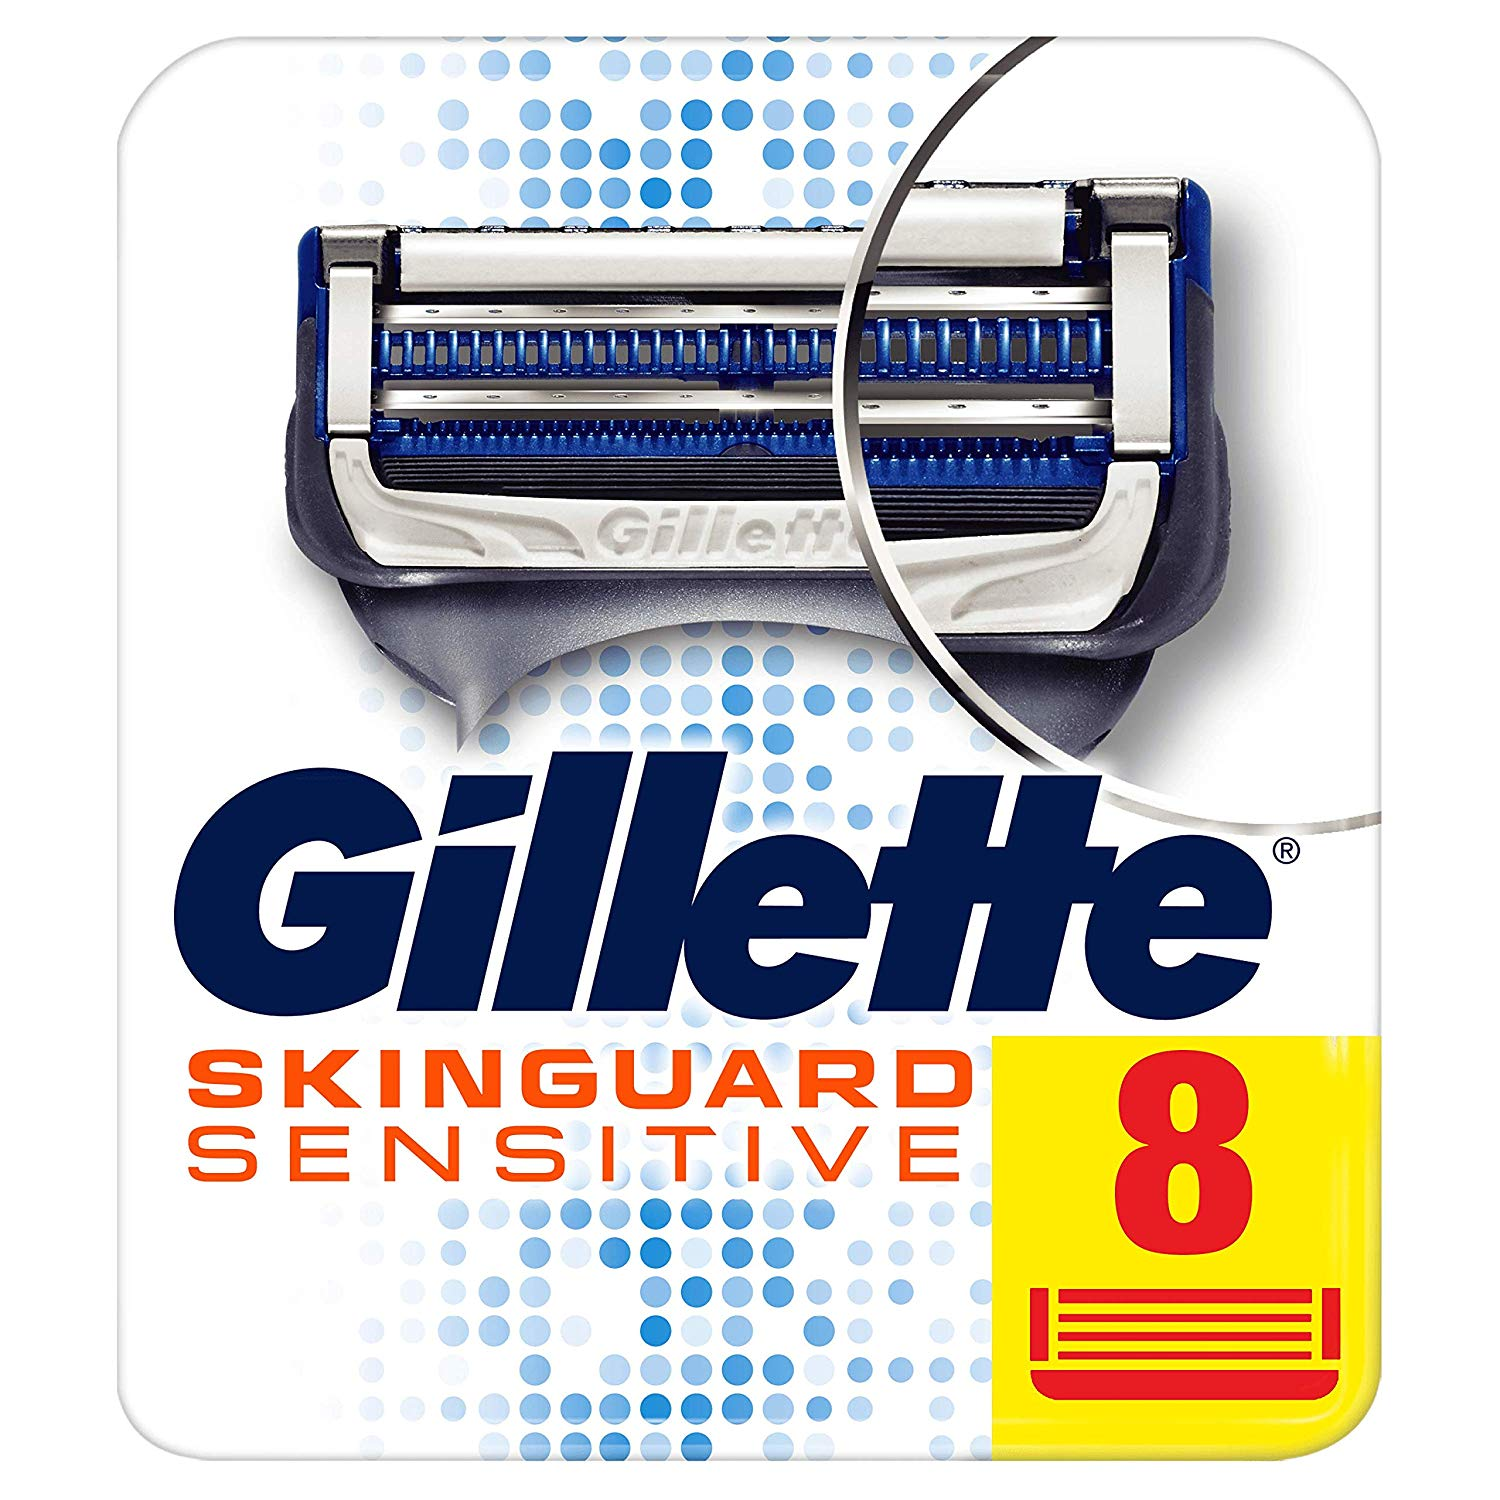 Original Gillette SKINGUARD Fusion Razor Blades Men Sensitive Shaver Razor Blade Black Technology Smooth Shaving Experience